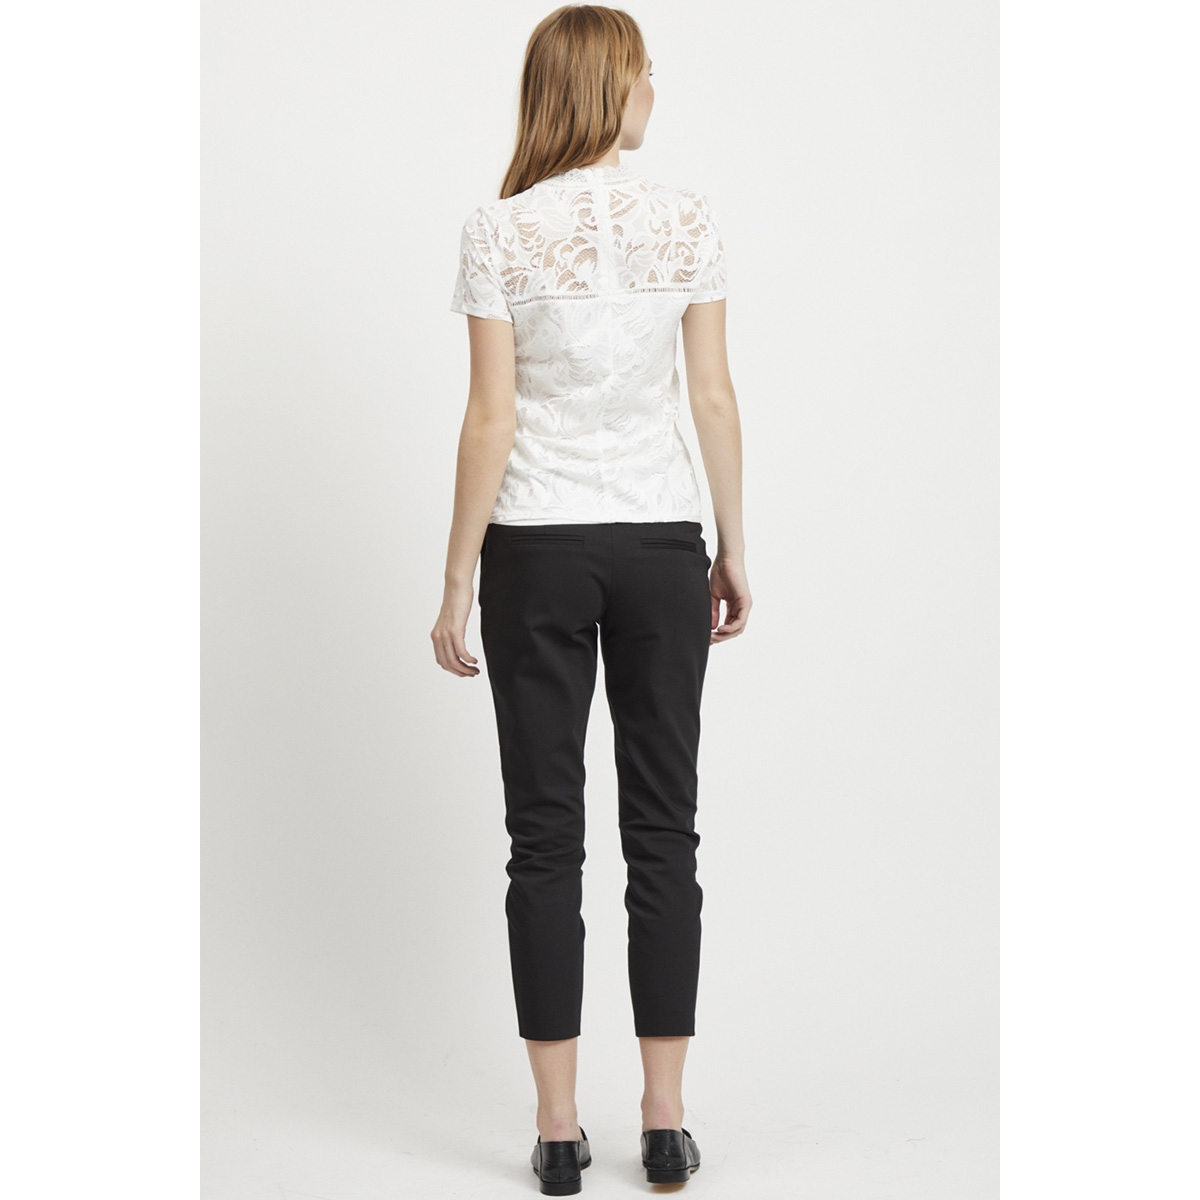 vistasia s/s lace top - noos 14049852 vila t-shirt cloud dancer